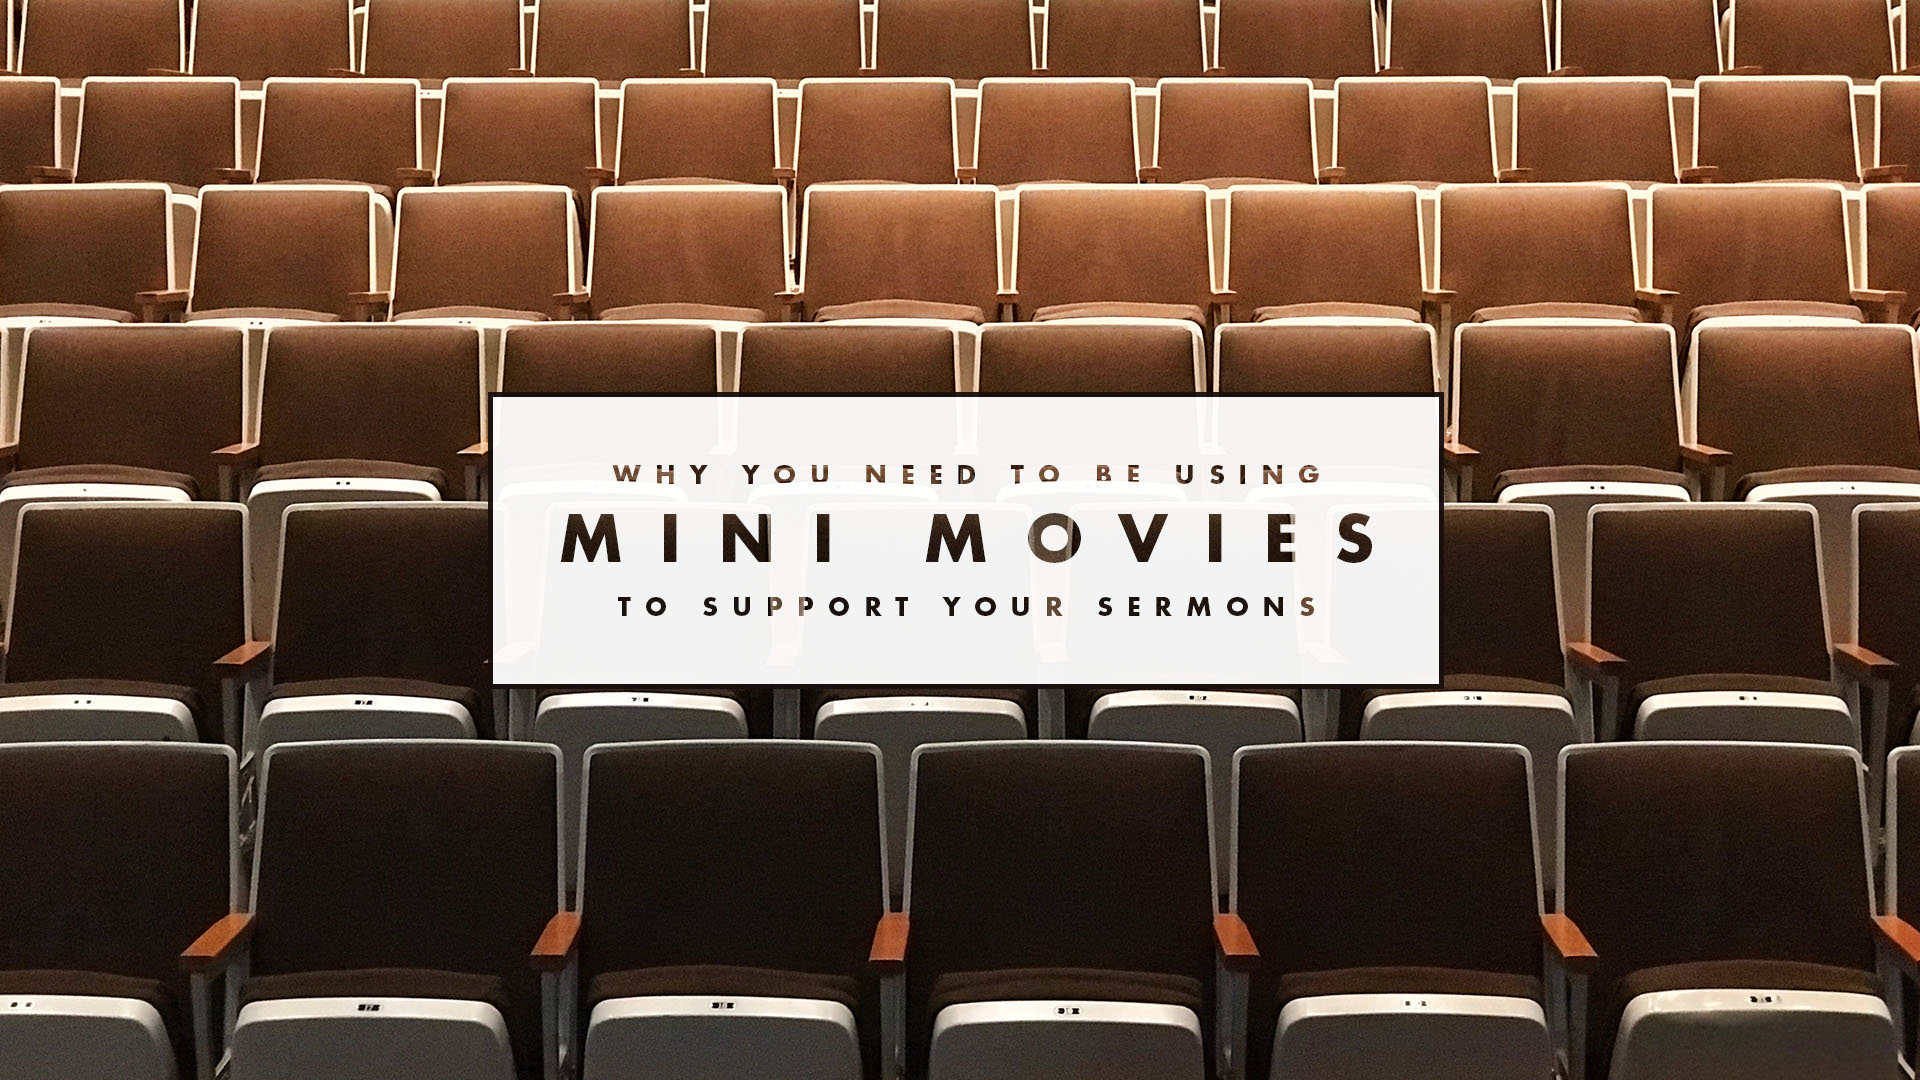 Why You Need To Be Using Mini Movies To Support Your Sermons